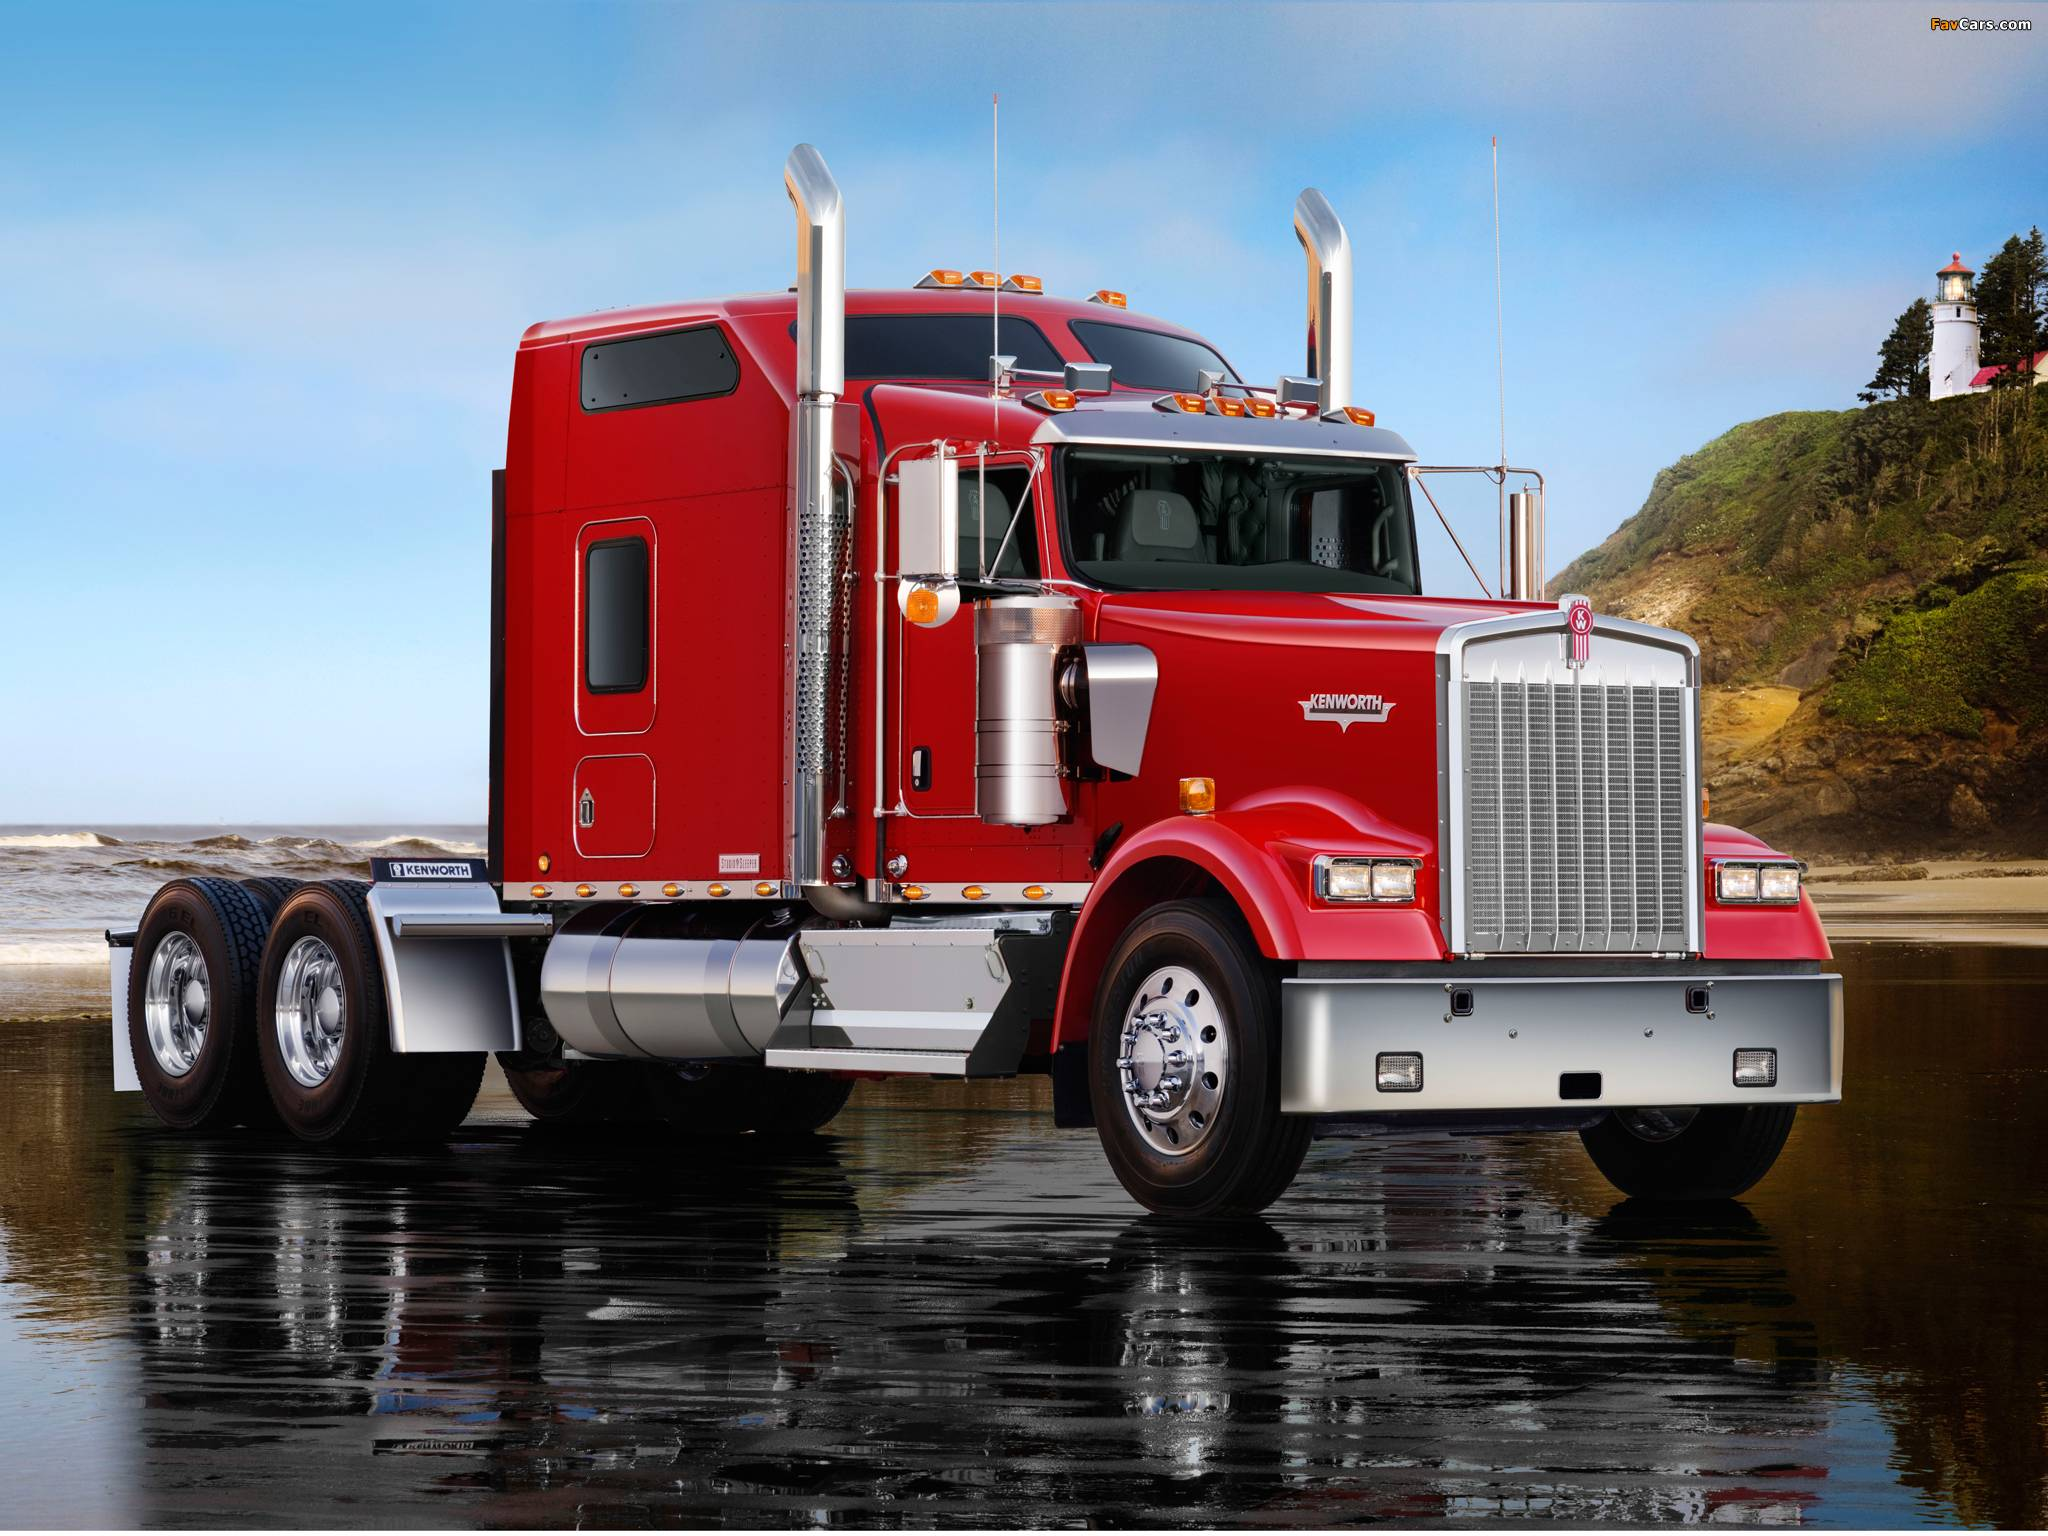 kenworth images - photo #6